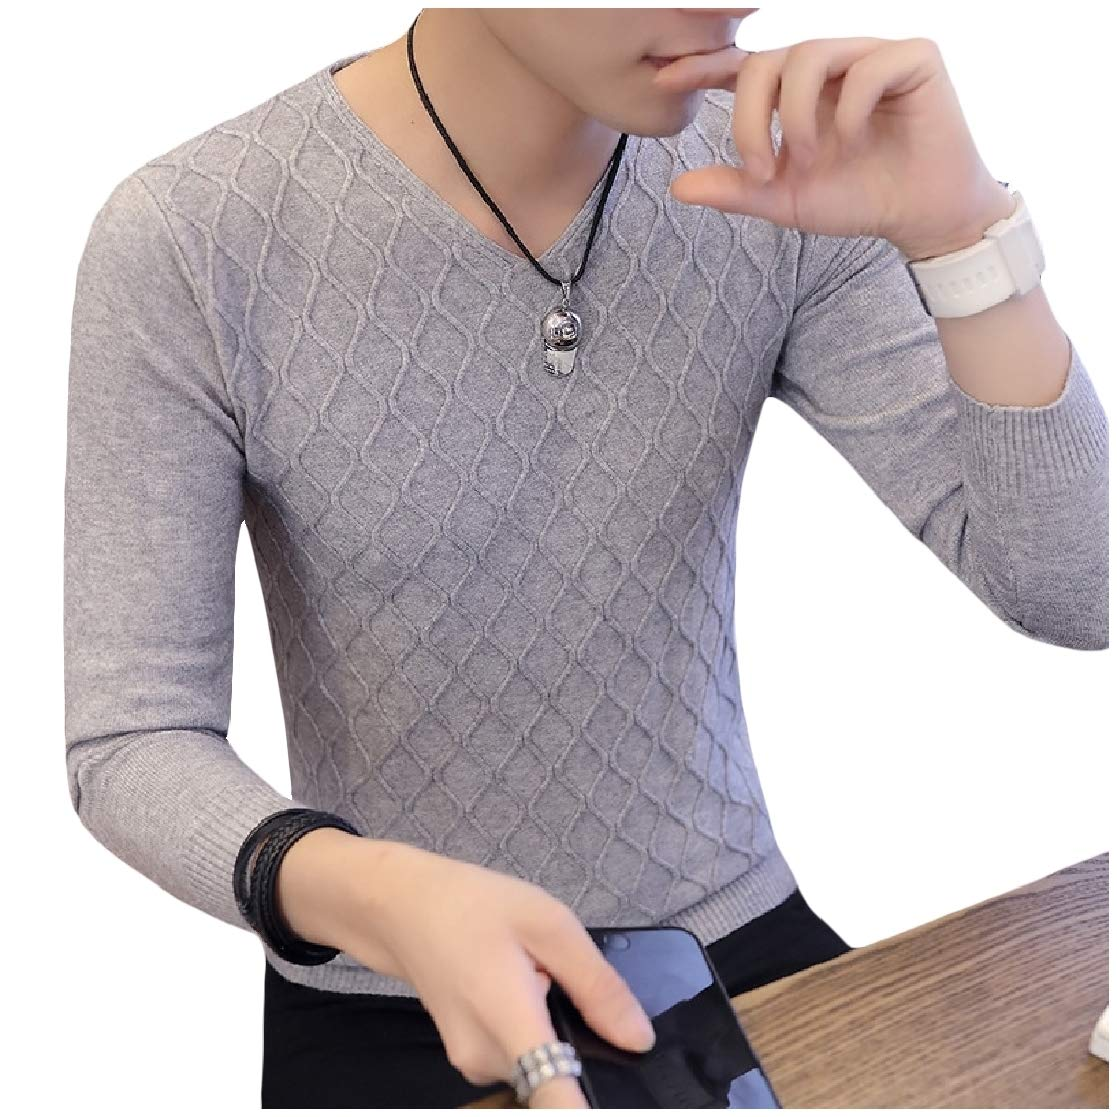 YUNY Mens Long-Sleeve Jacquard Silm Fit Knitwear Chic Soft Pullover Sweater AS1 S